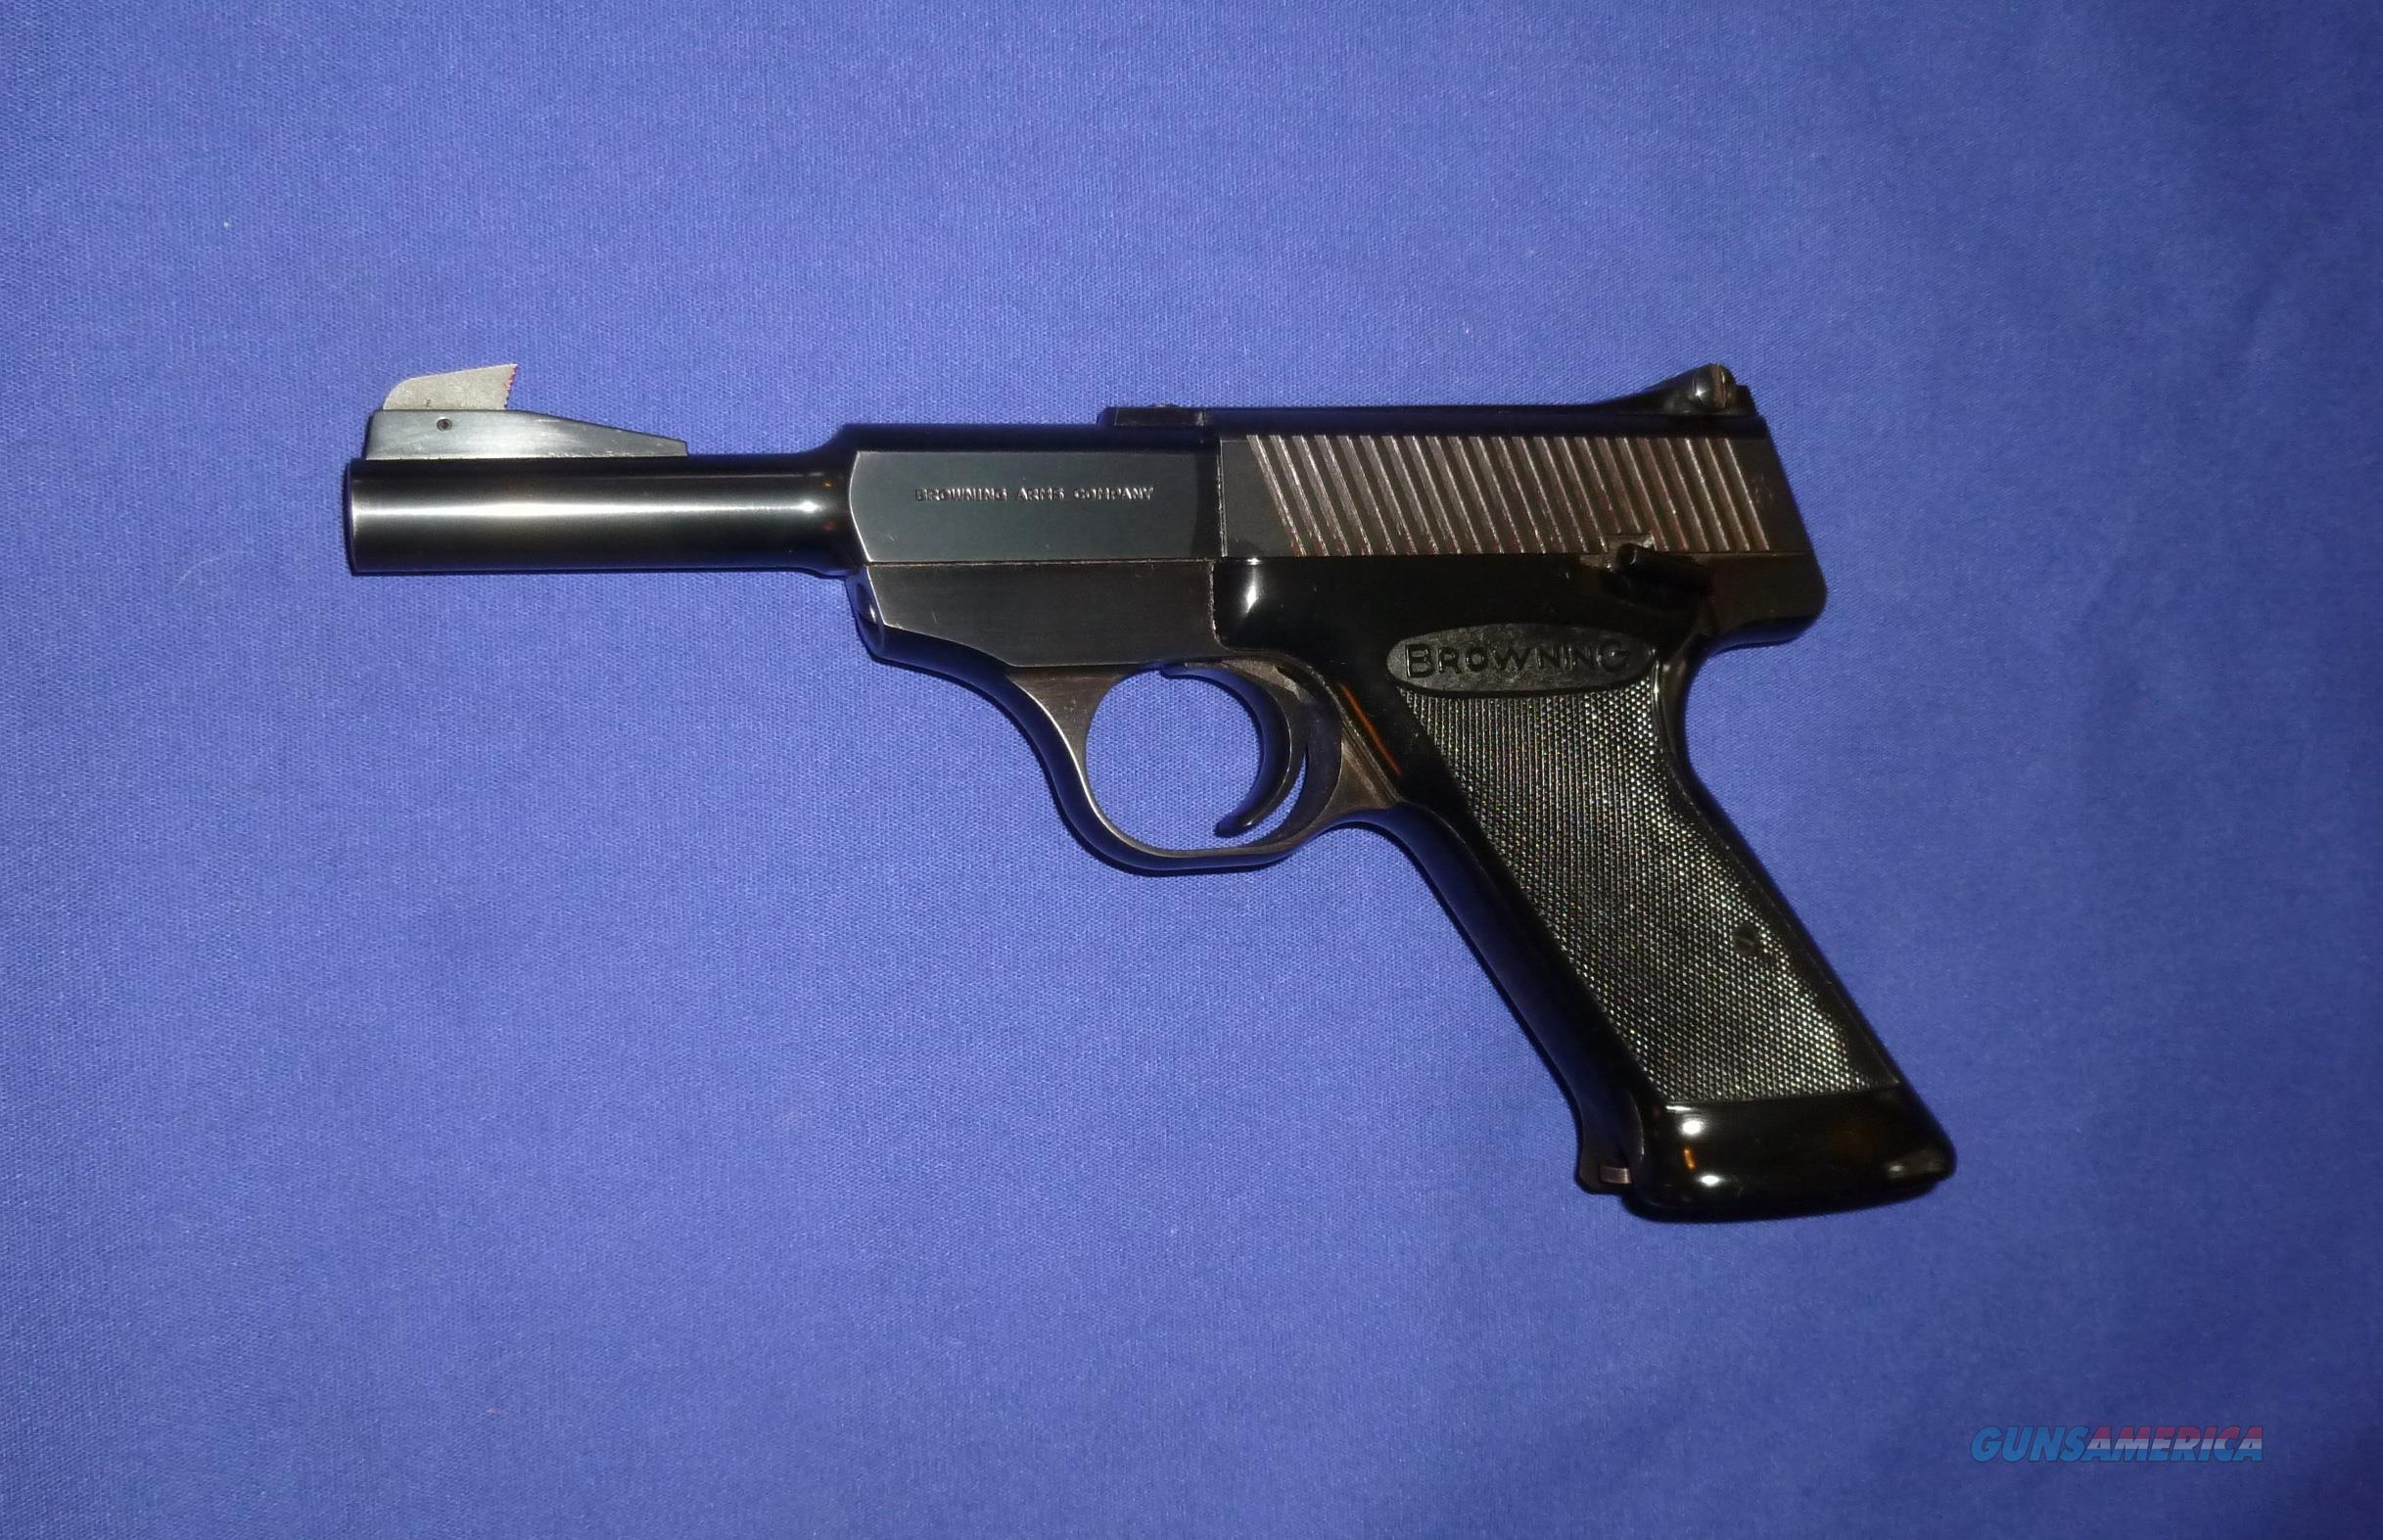 BELGIUM BROWNING NOMAD 22LR PISTOL  Guns > Pistols > Browning Pistols > Other Autos